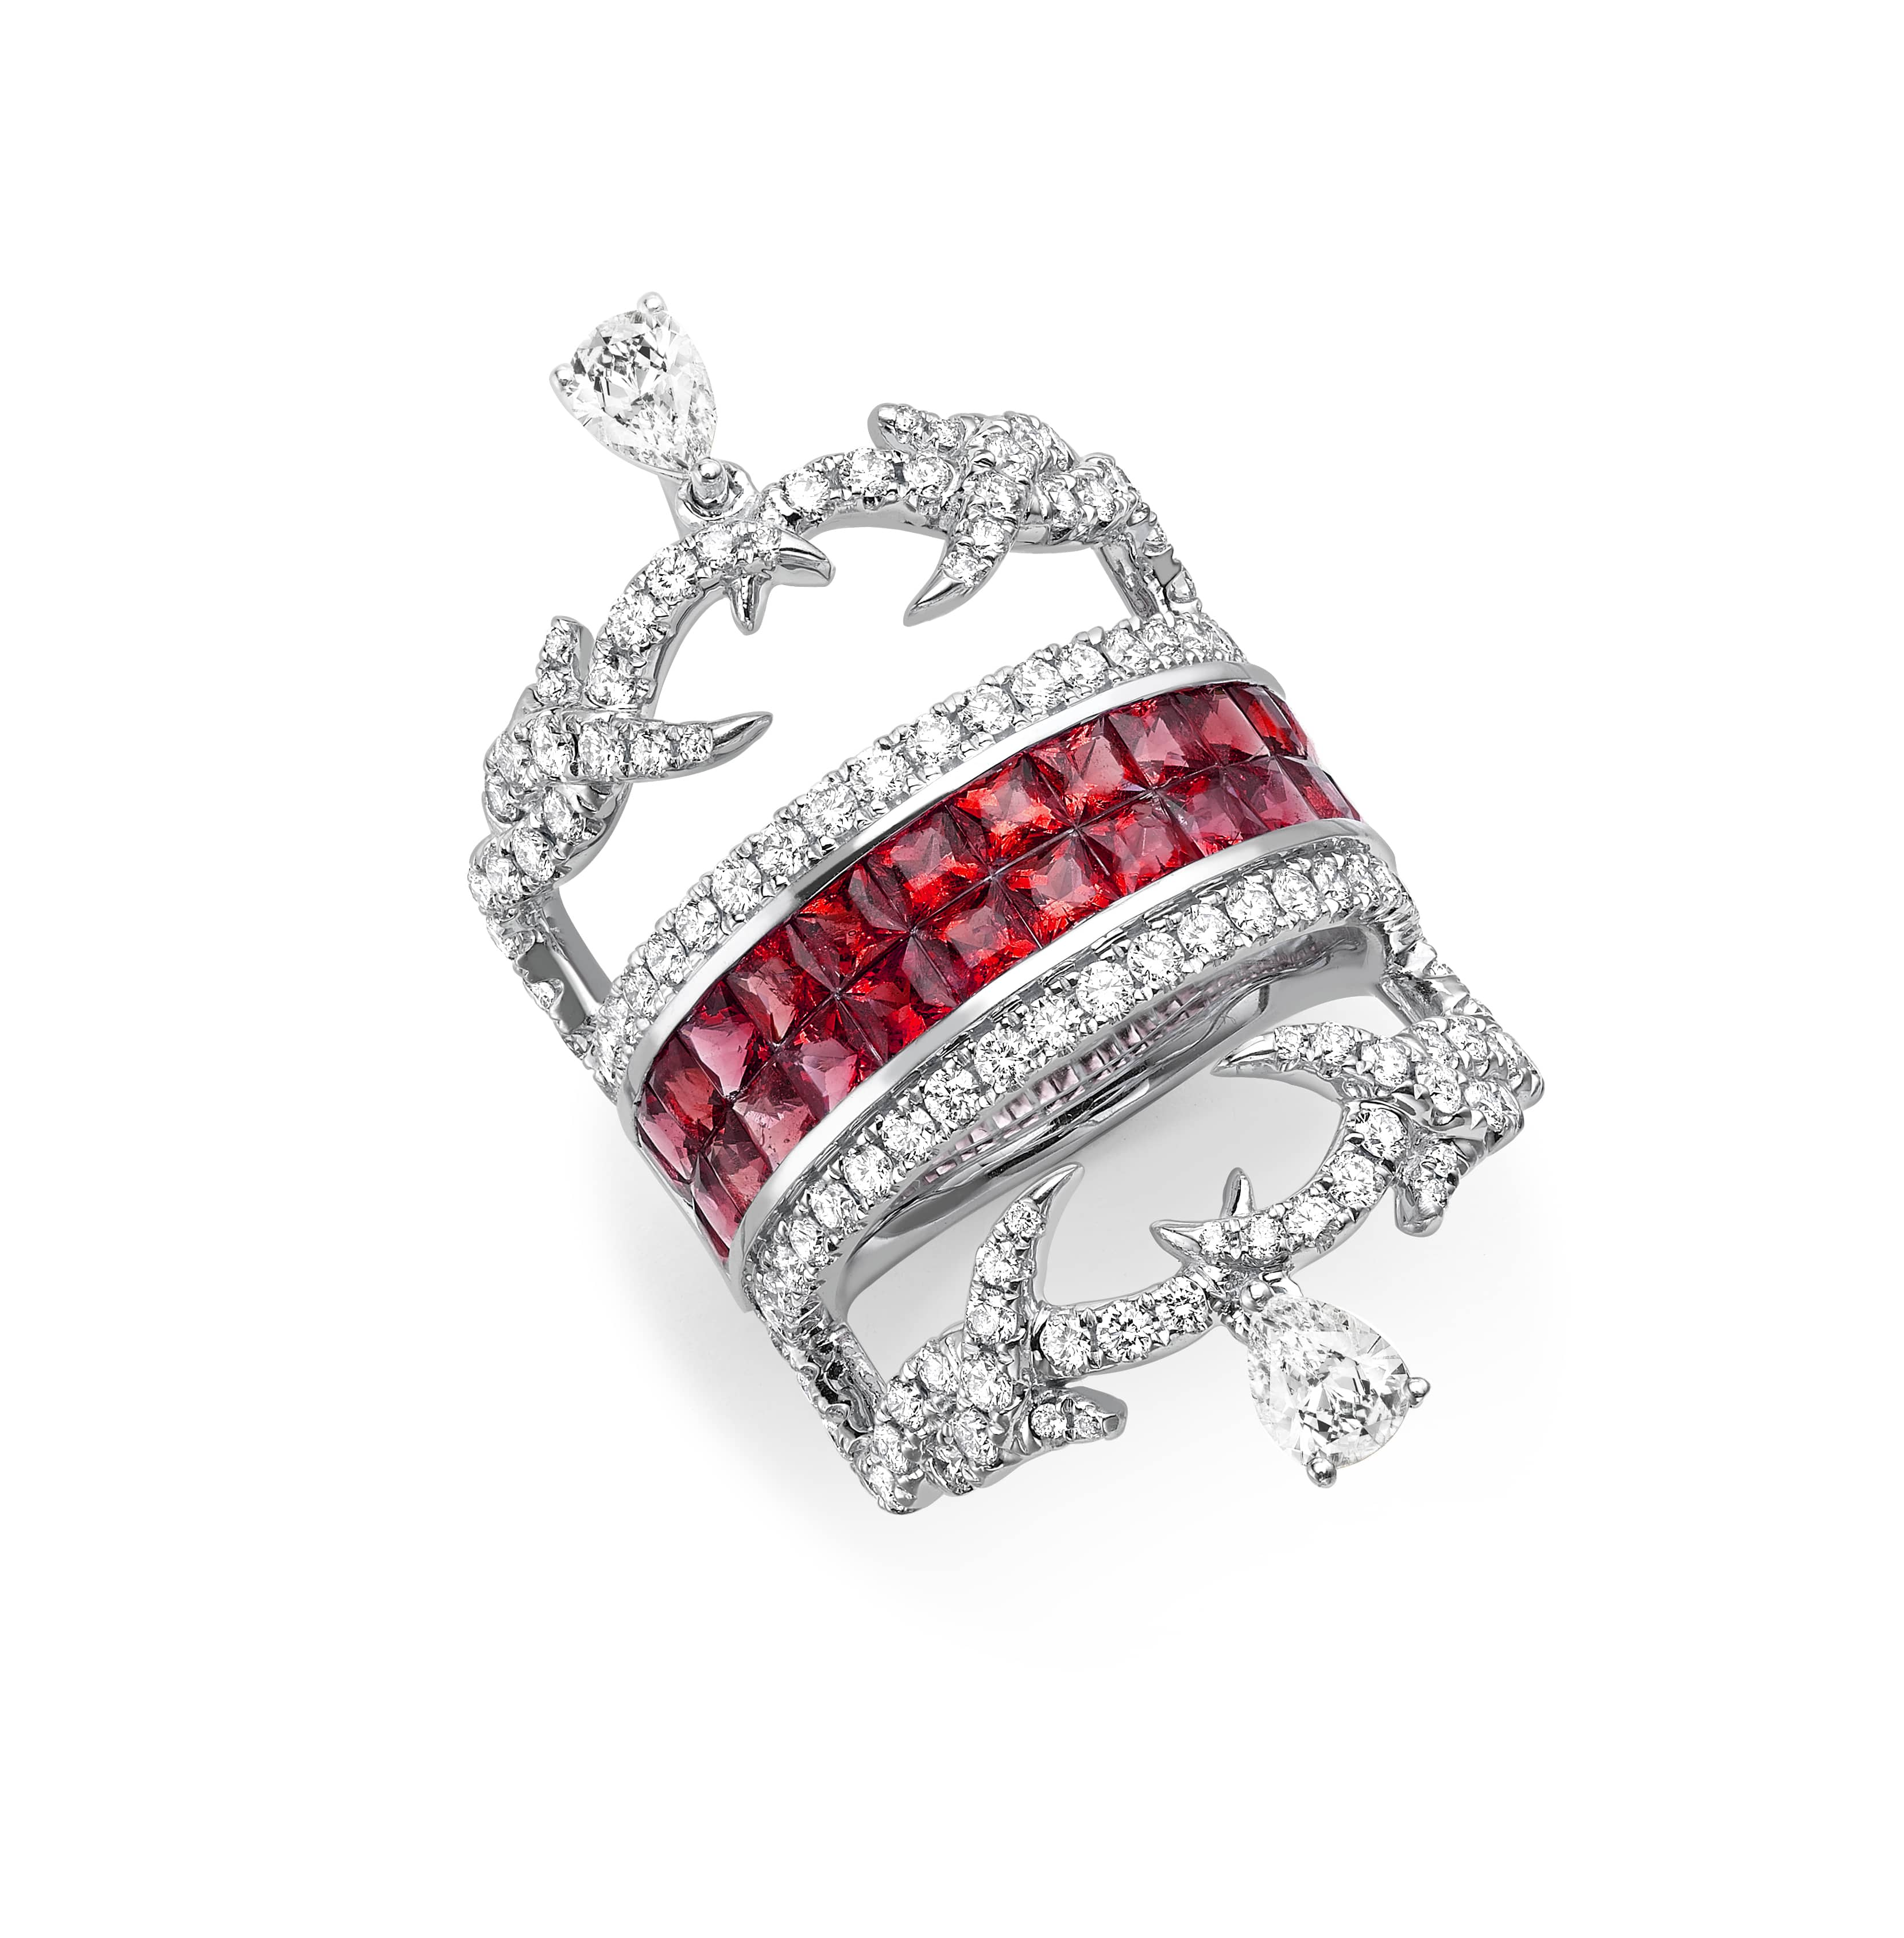 Imperial-Crest-Ring-Ruby-and-Diamond-Sarah-Ho